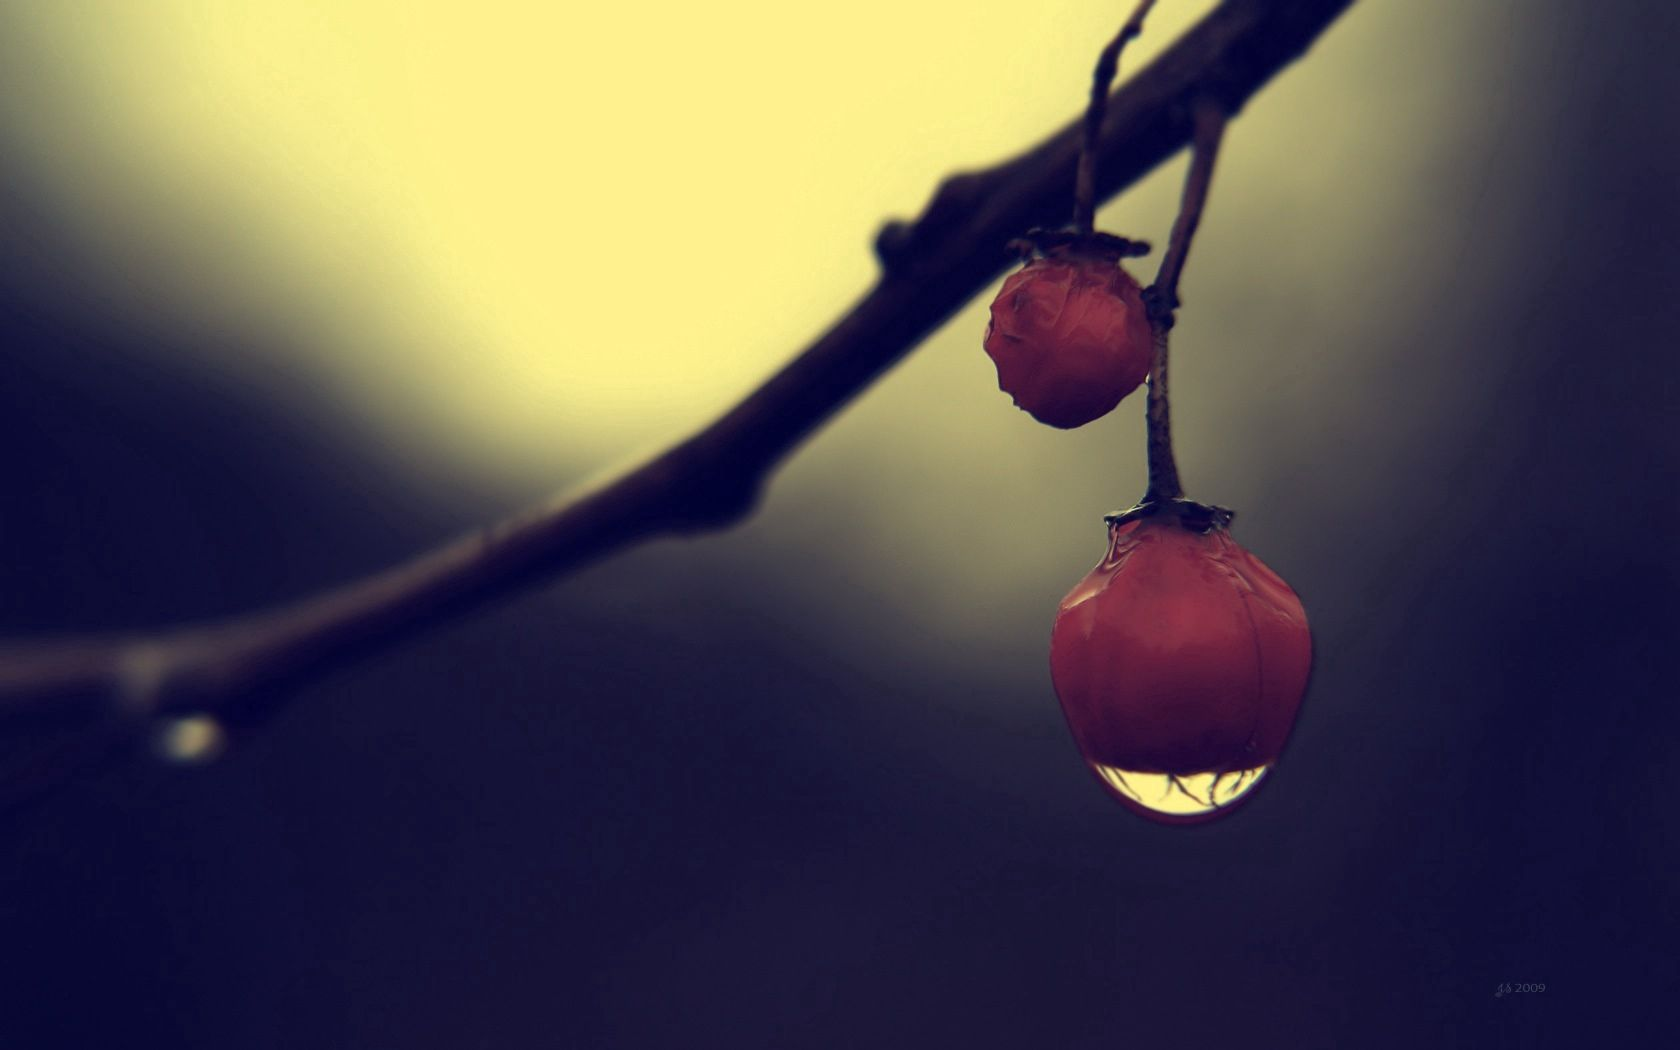 79401 download wallpaper Macro, Berry, Drops, Branch, Shadow screensavers and pictures for free